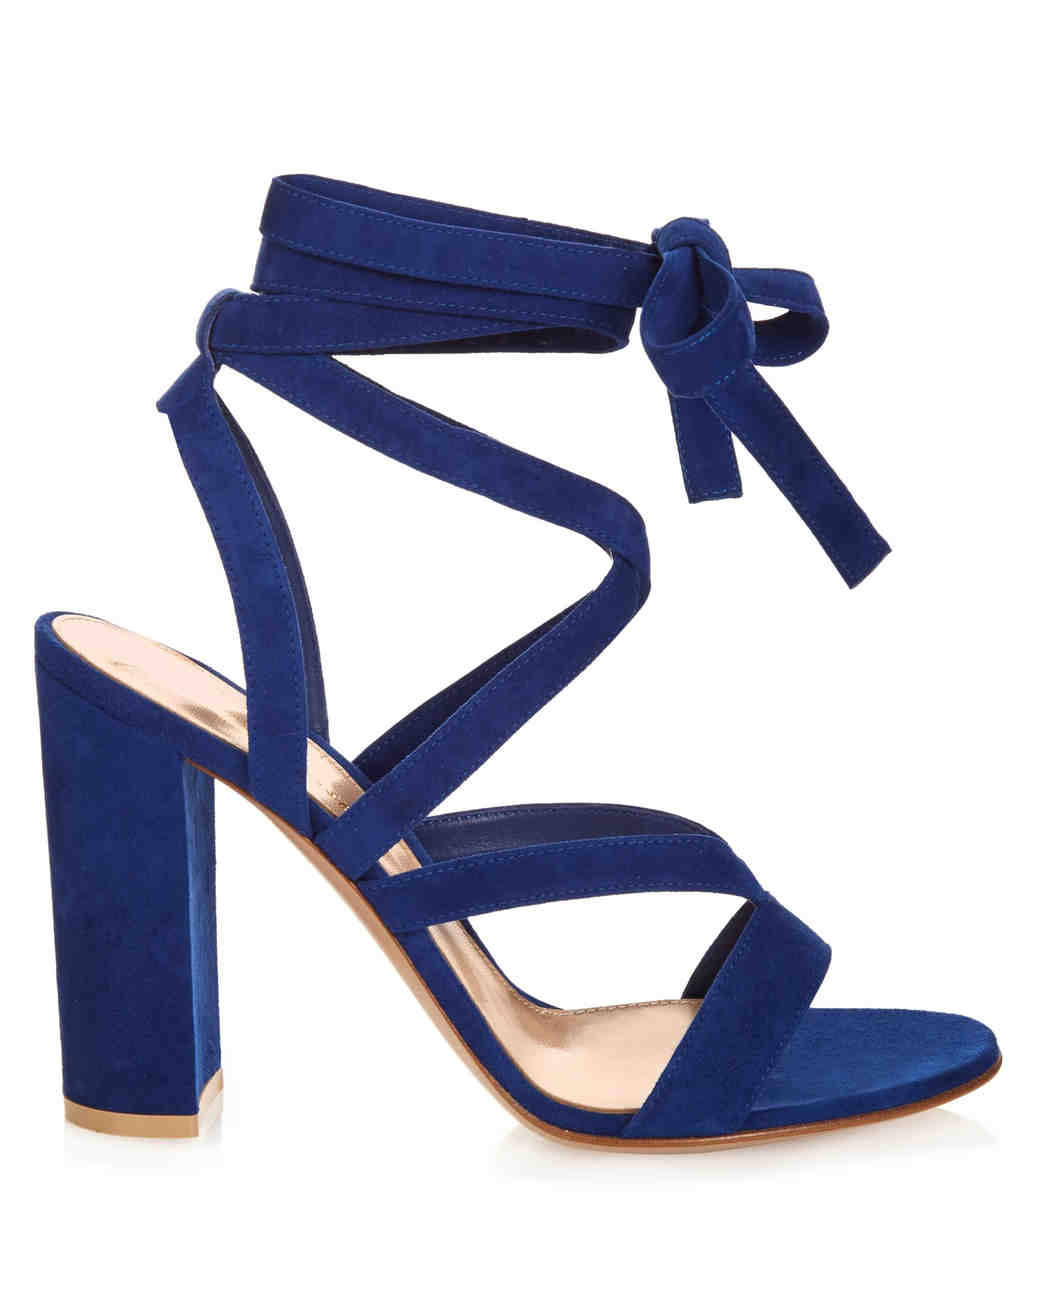 Gianvitto Rossi Suede Sapphire Lace-Up Sandals